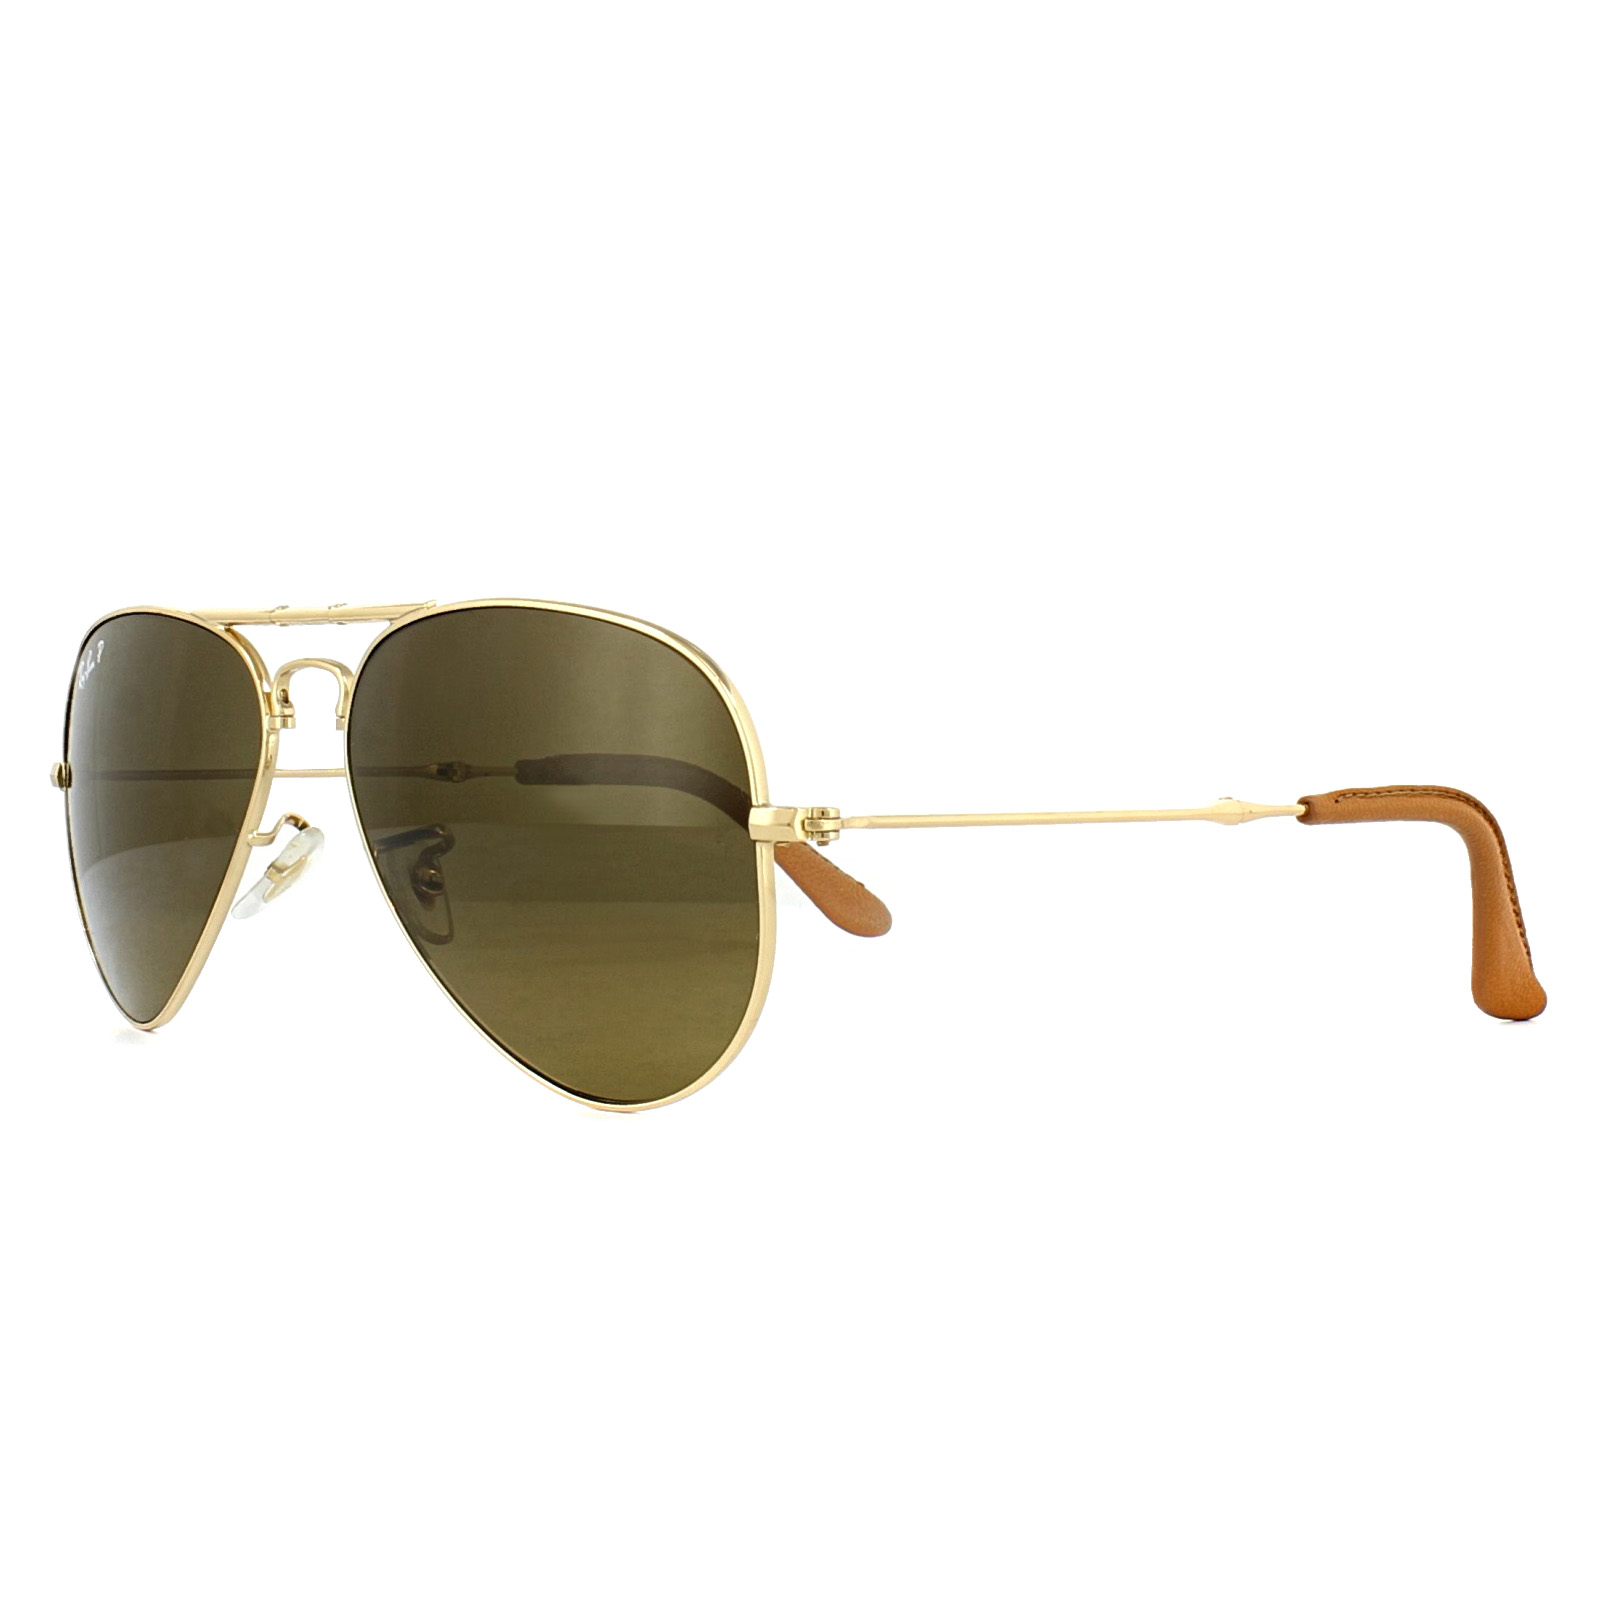 4f7b1fca22ec4 Sentinel Ray-Ban Sunglasses 3479KQ 001 M7 Gold Brown Gradient Polarized 55mm